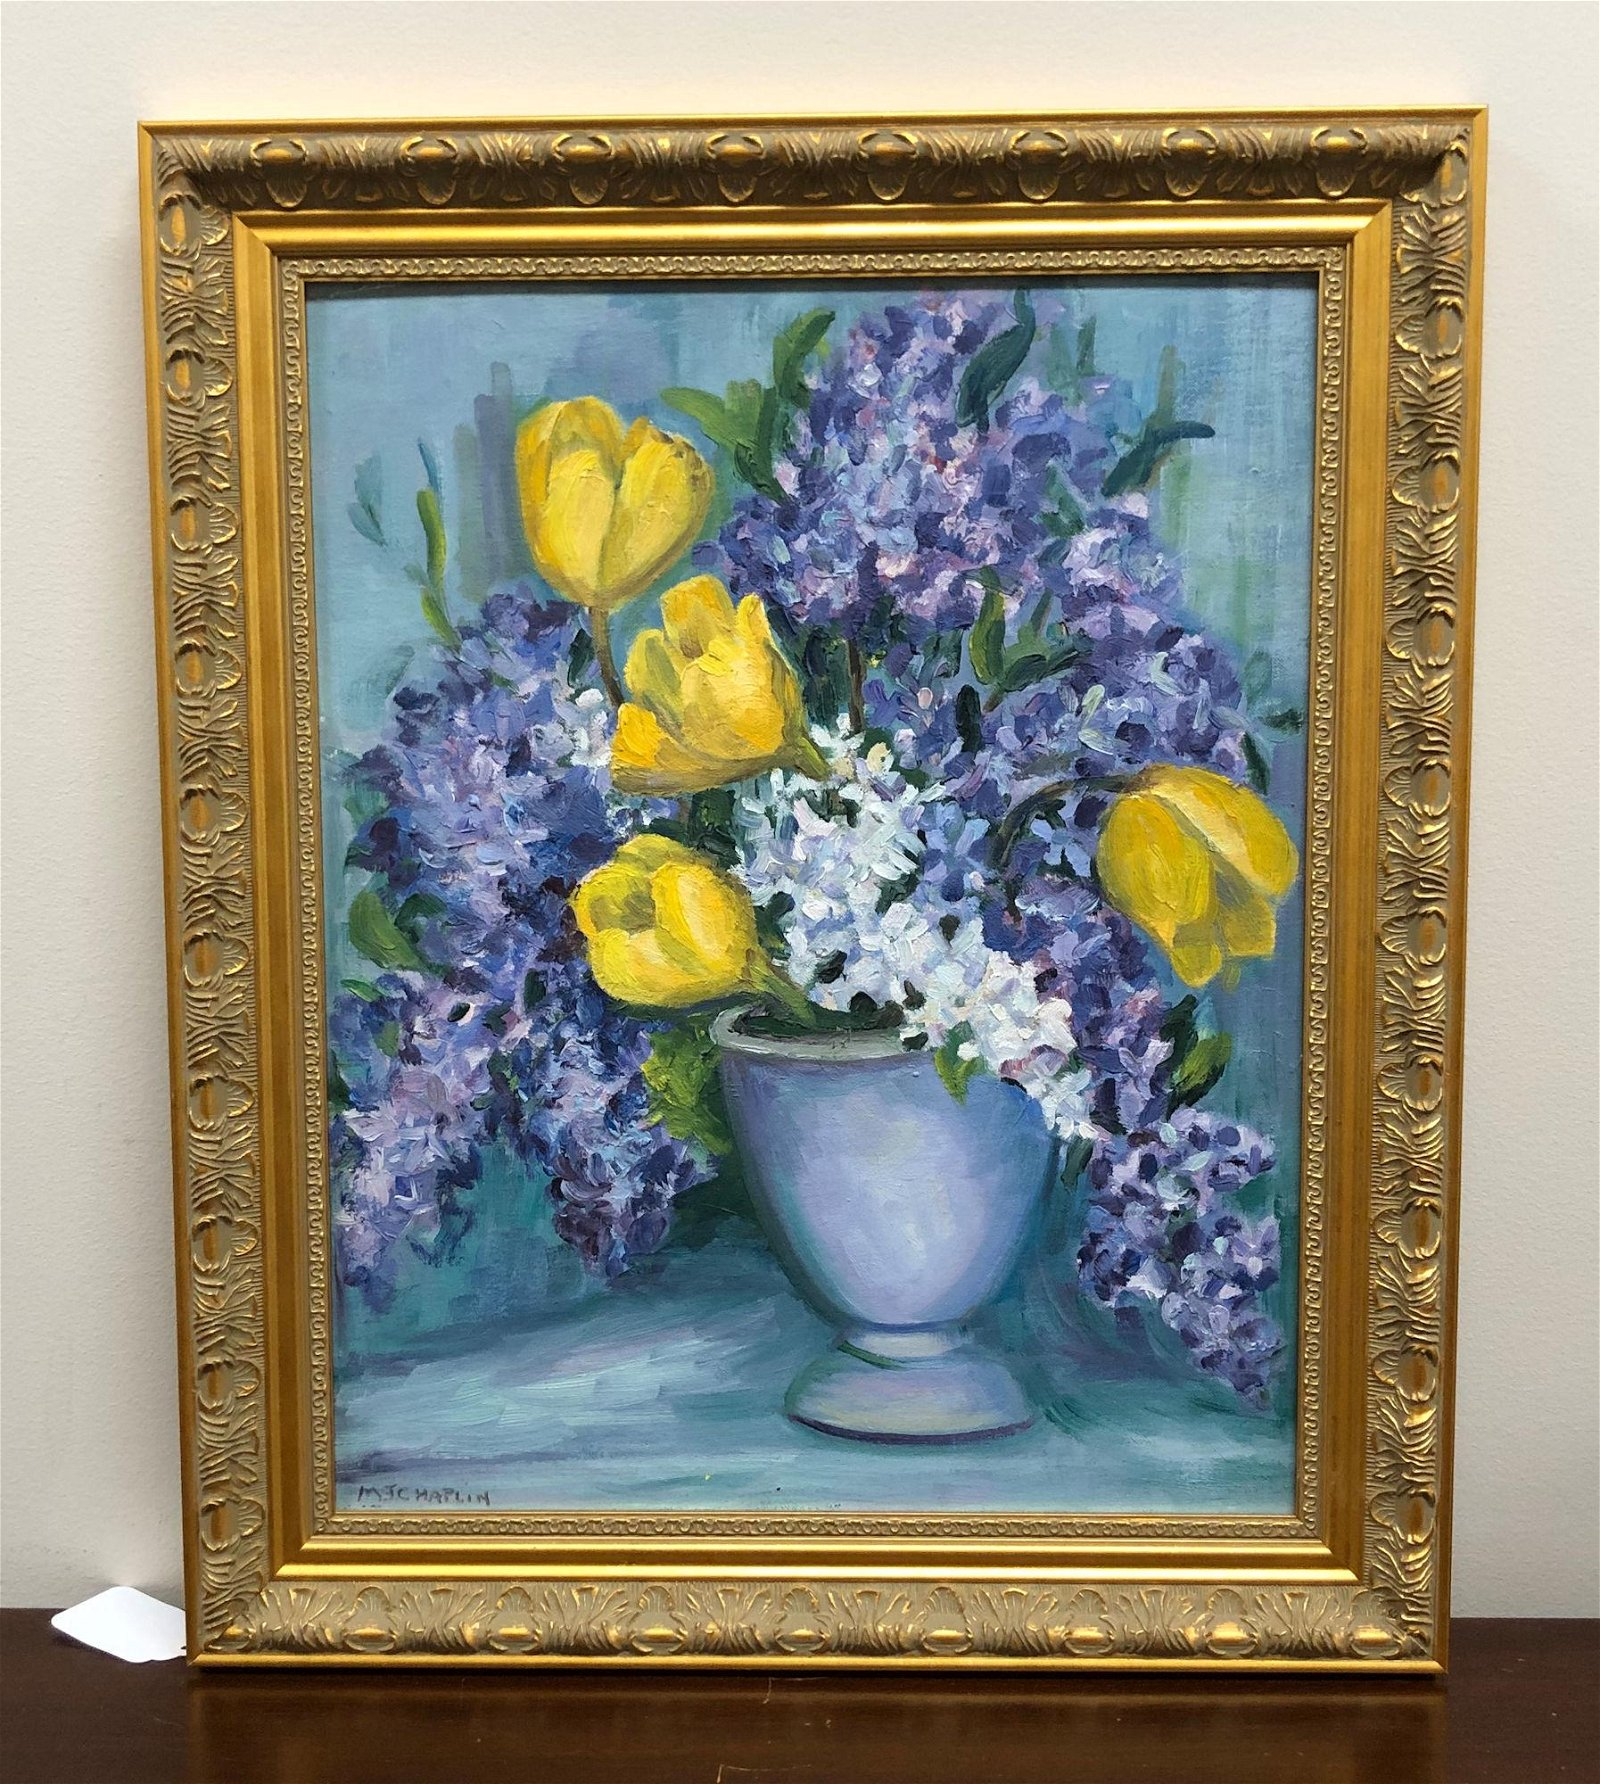 M. J. CHAPLIN OIL ON BOARD TULIPS AND LILACS. SIGNED